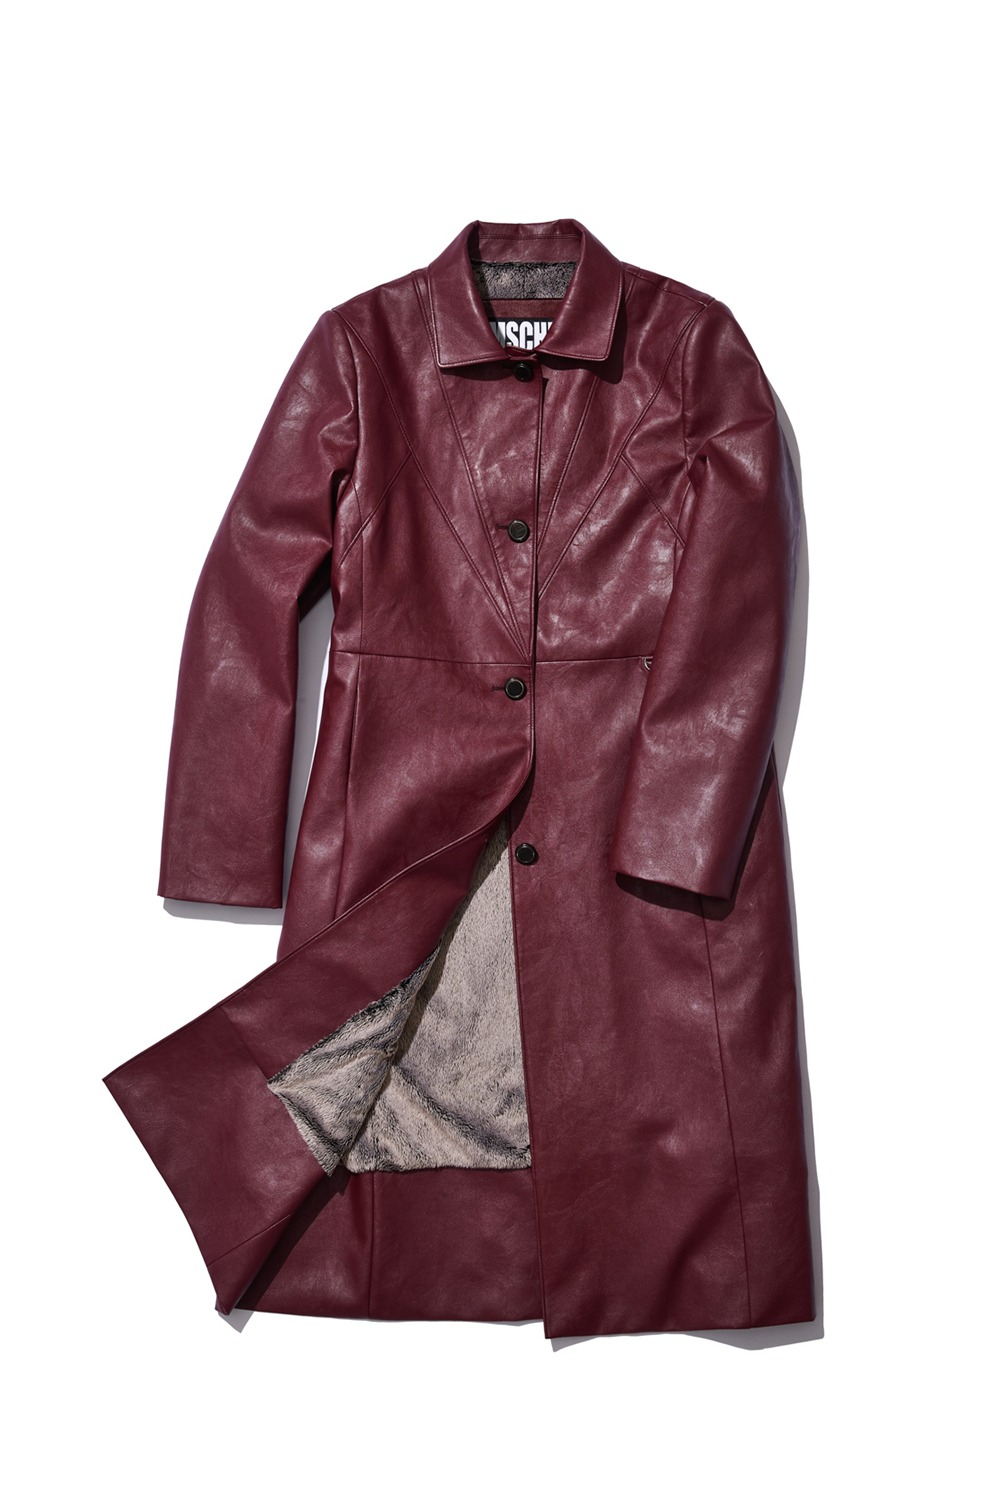 RETRO METRO FAUX LEATHER COAT_burgundy